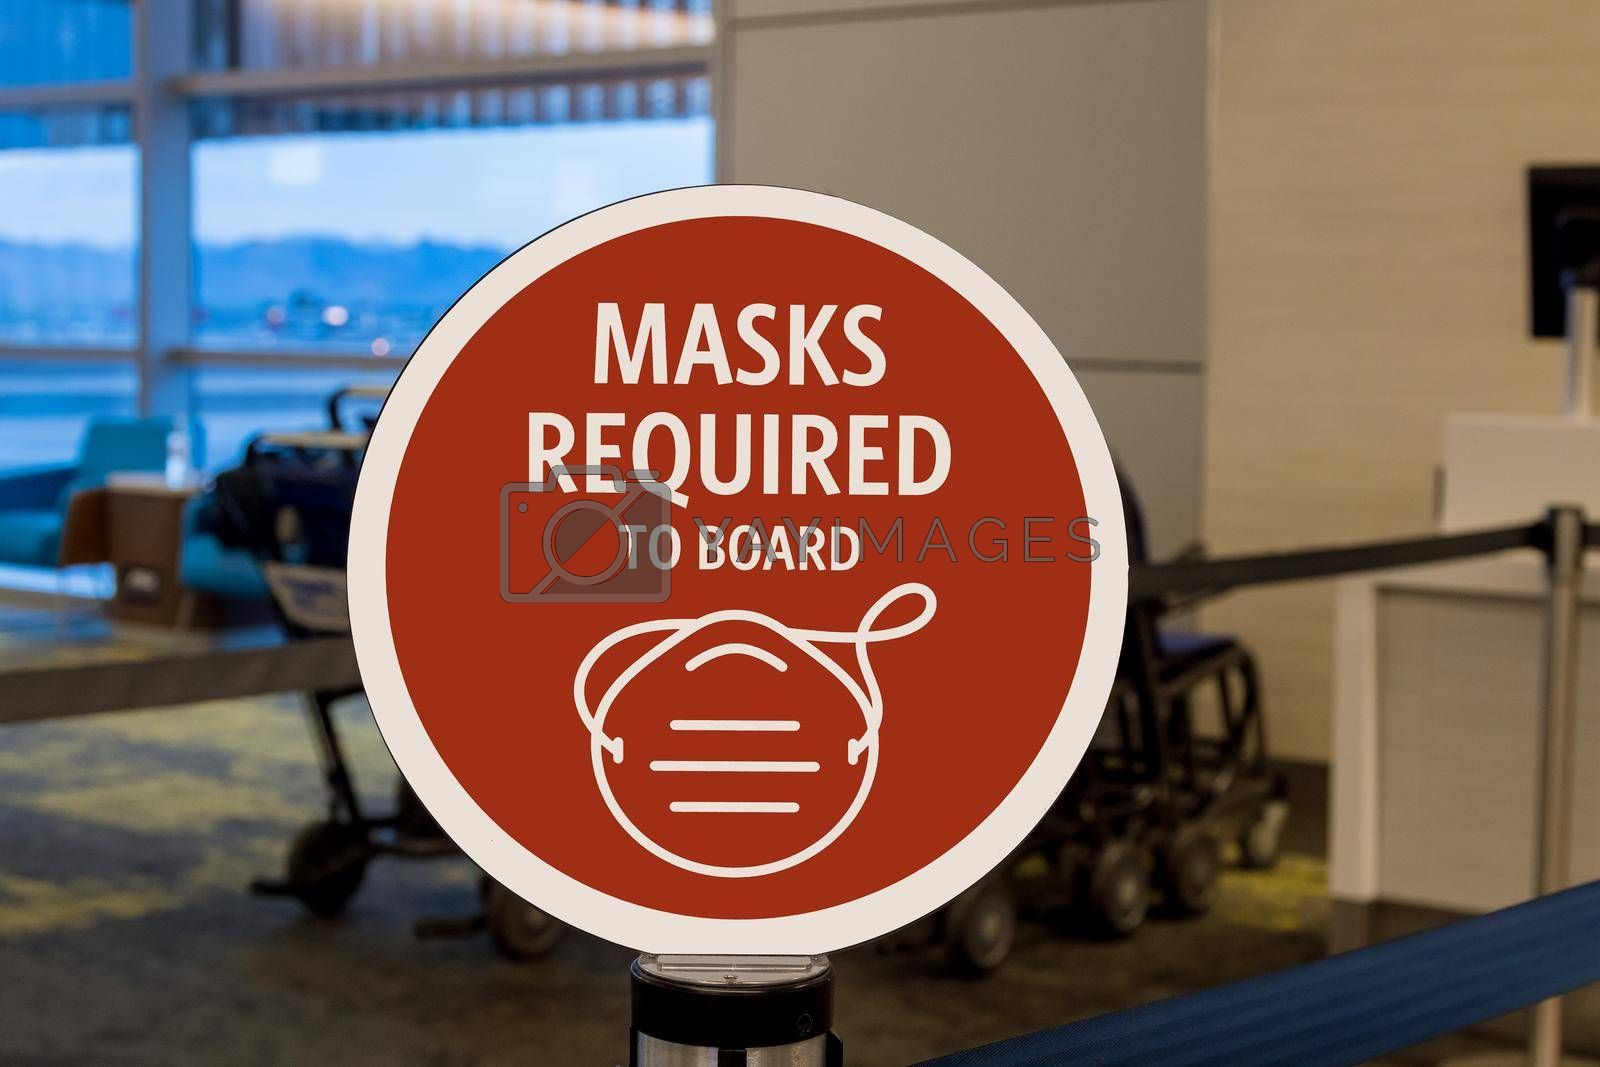 Preventive signs for COVID-19 pandemic before entering a airport terminal on signs in the masks required to board